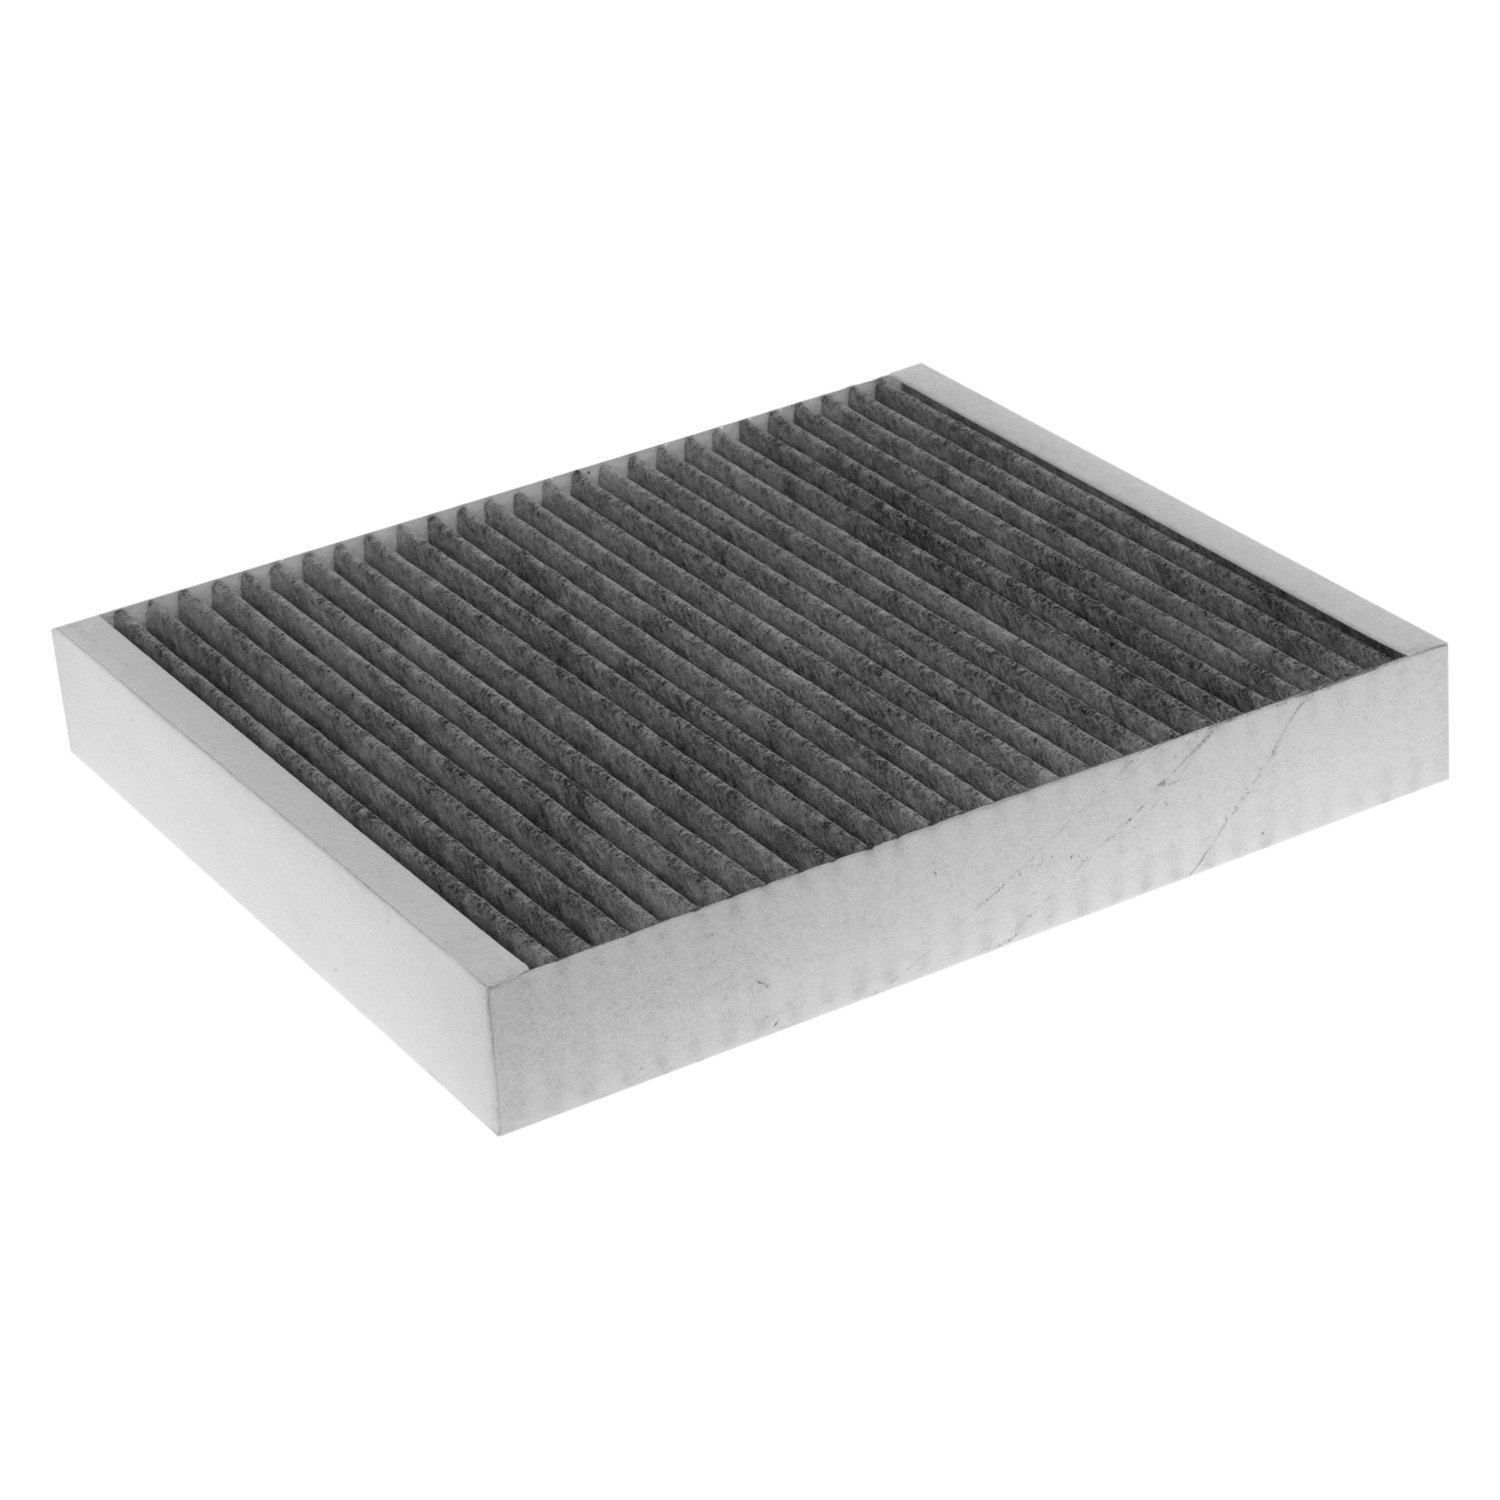 Acdelco 174 Chevy Cruze 2016 Professional Cabin Air Filter